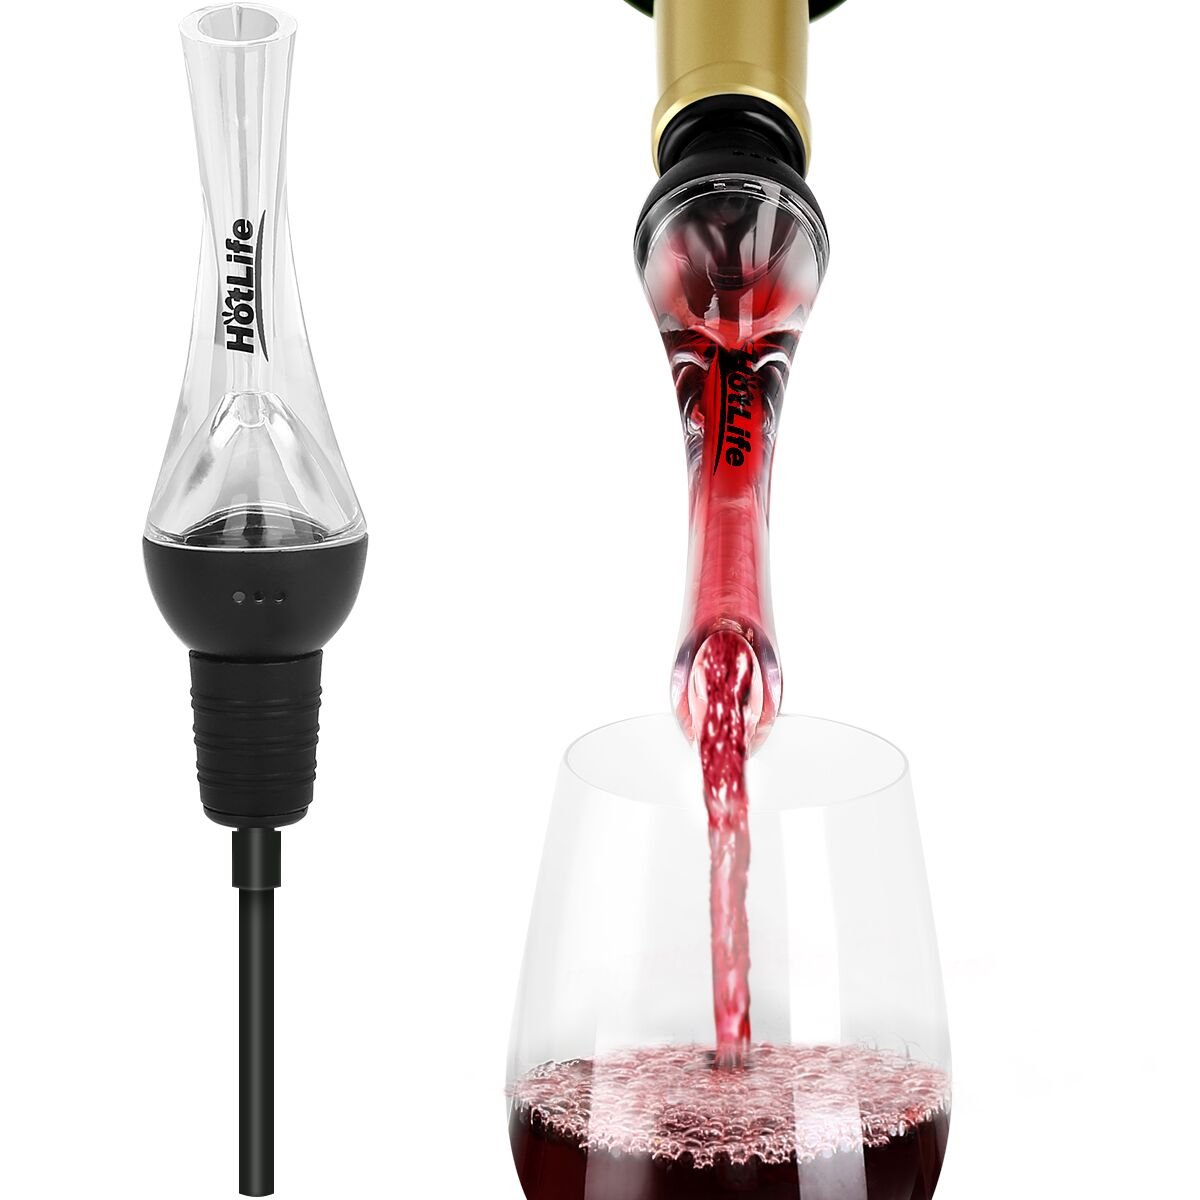 HotLife Premium Wine Aerator Pourer - Wine Decanter Spout and Best Wine Pourer